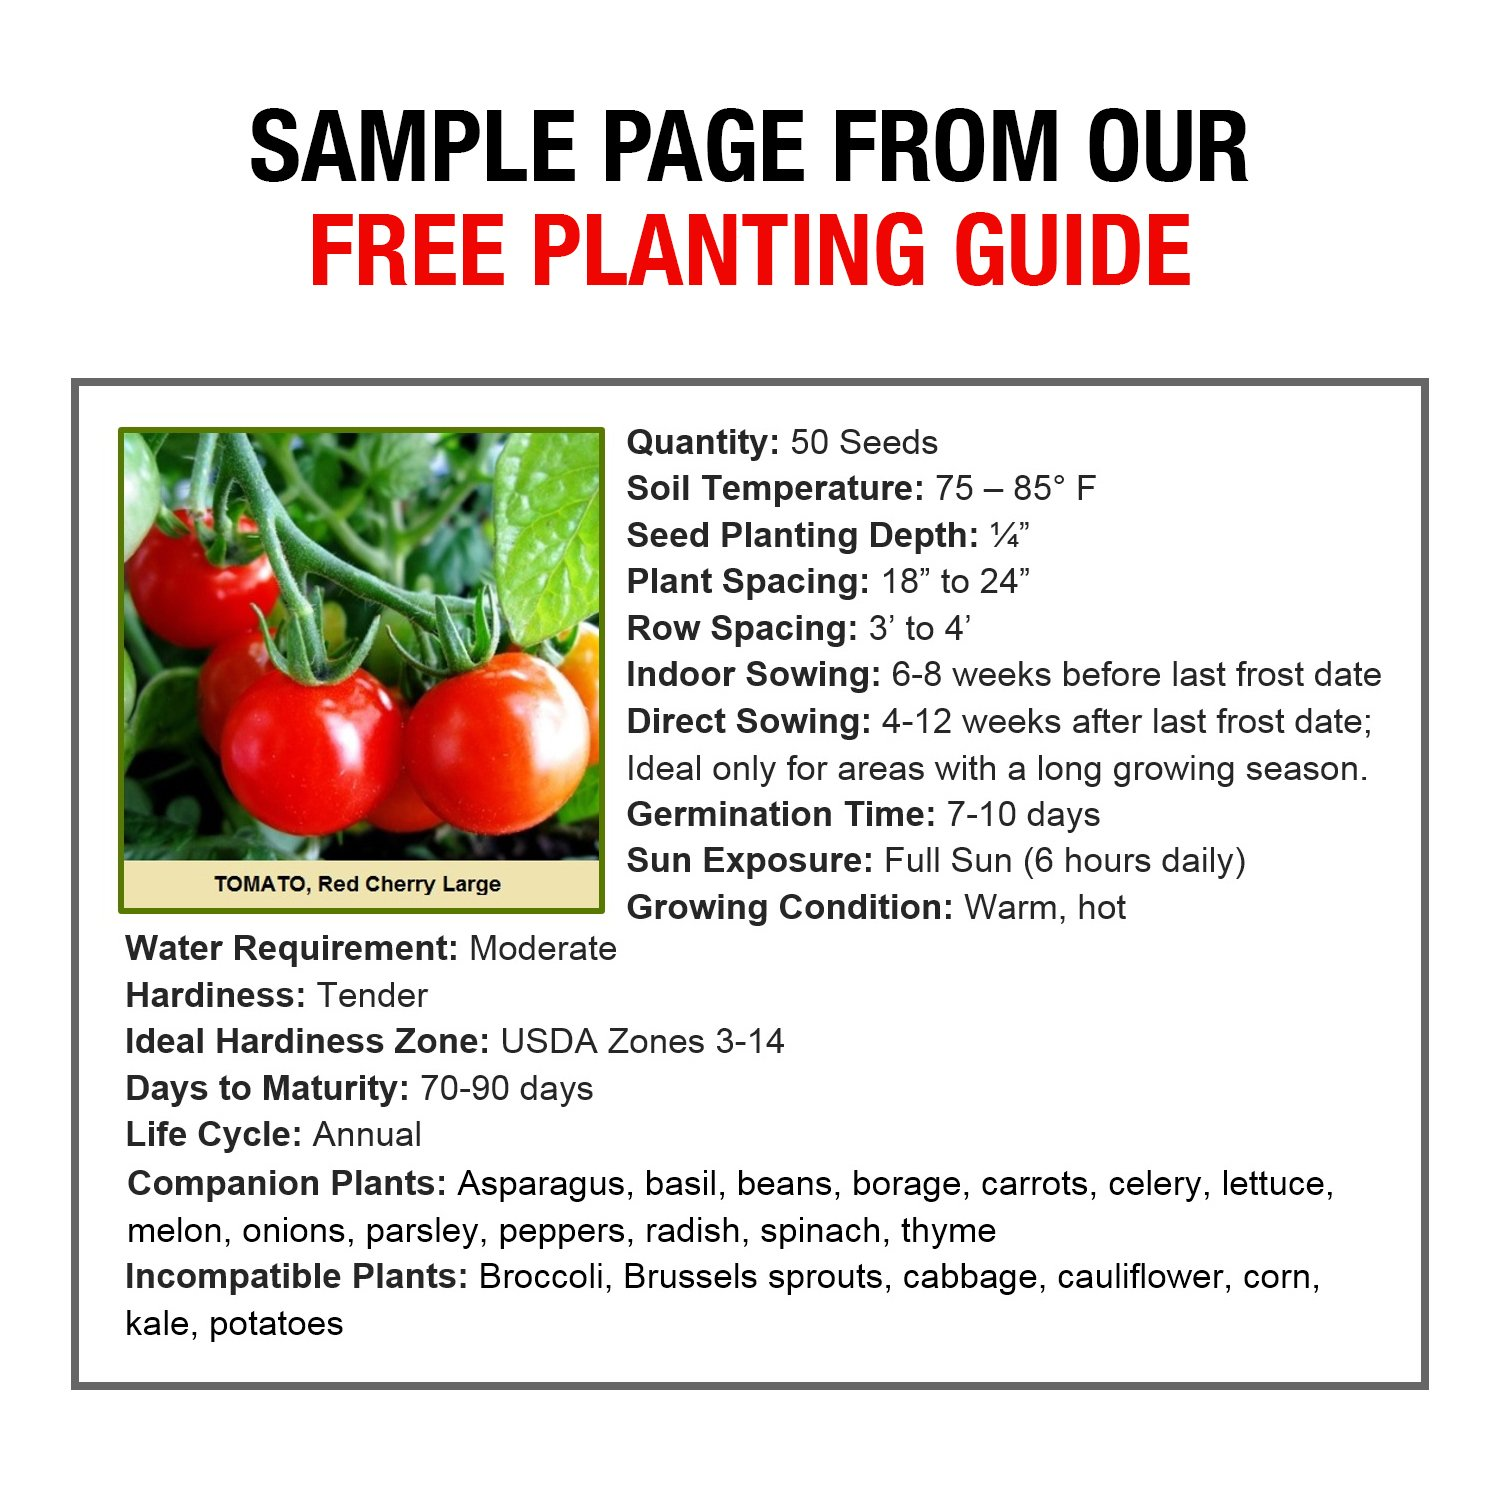 Non-GMO Heirloom Vegetable Seeds Survival Garden - 105 Varieties Cover All Hardiness Zones - Emergency Doomsday Supplies - Made In USA by Grow For It by Grow For It (Image #4)